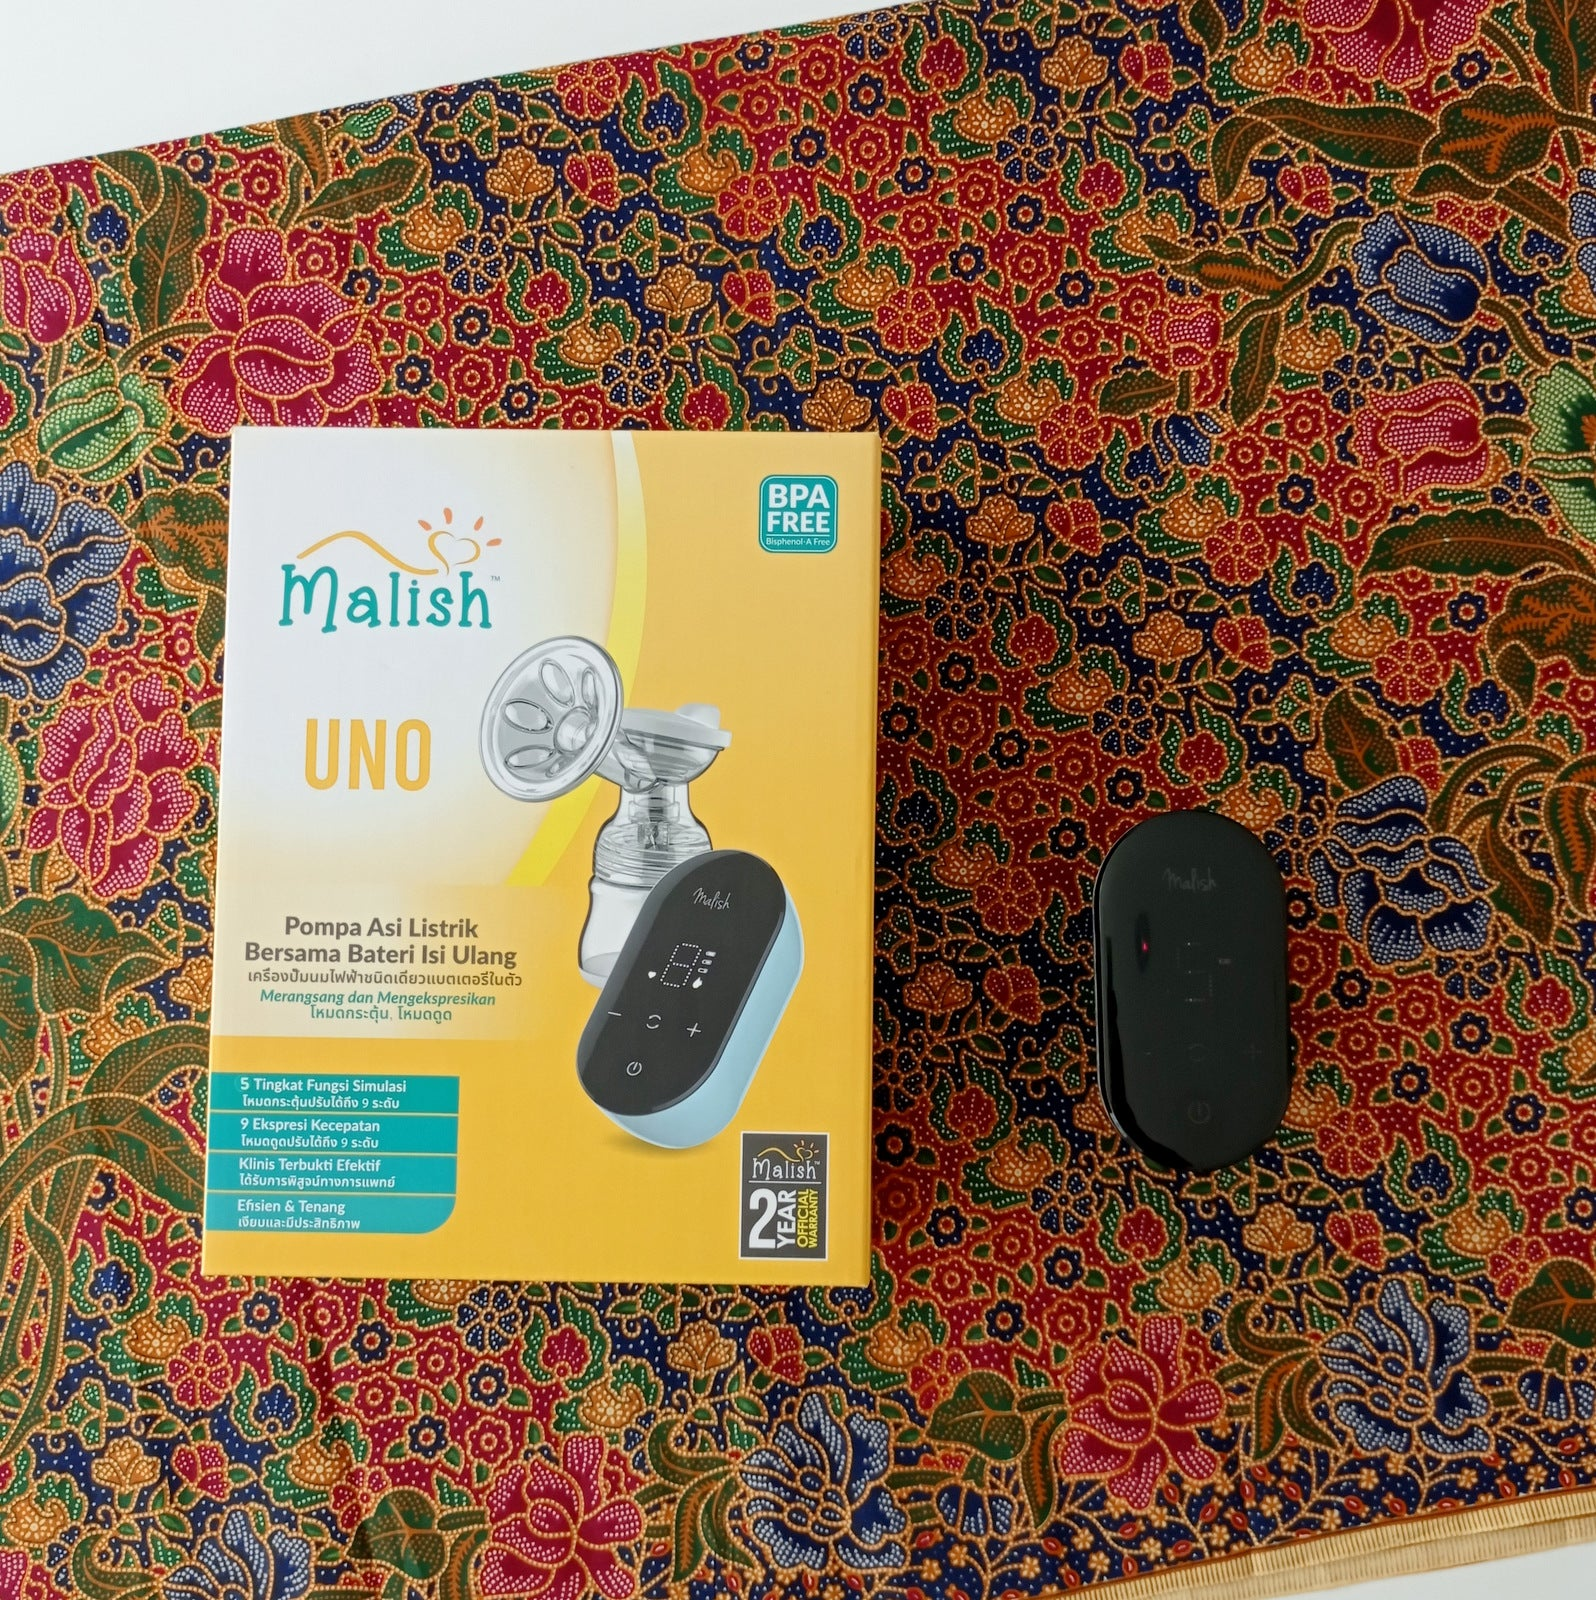 Malish Uno Rechargeable Single Breast pump + Free Gift